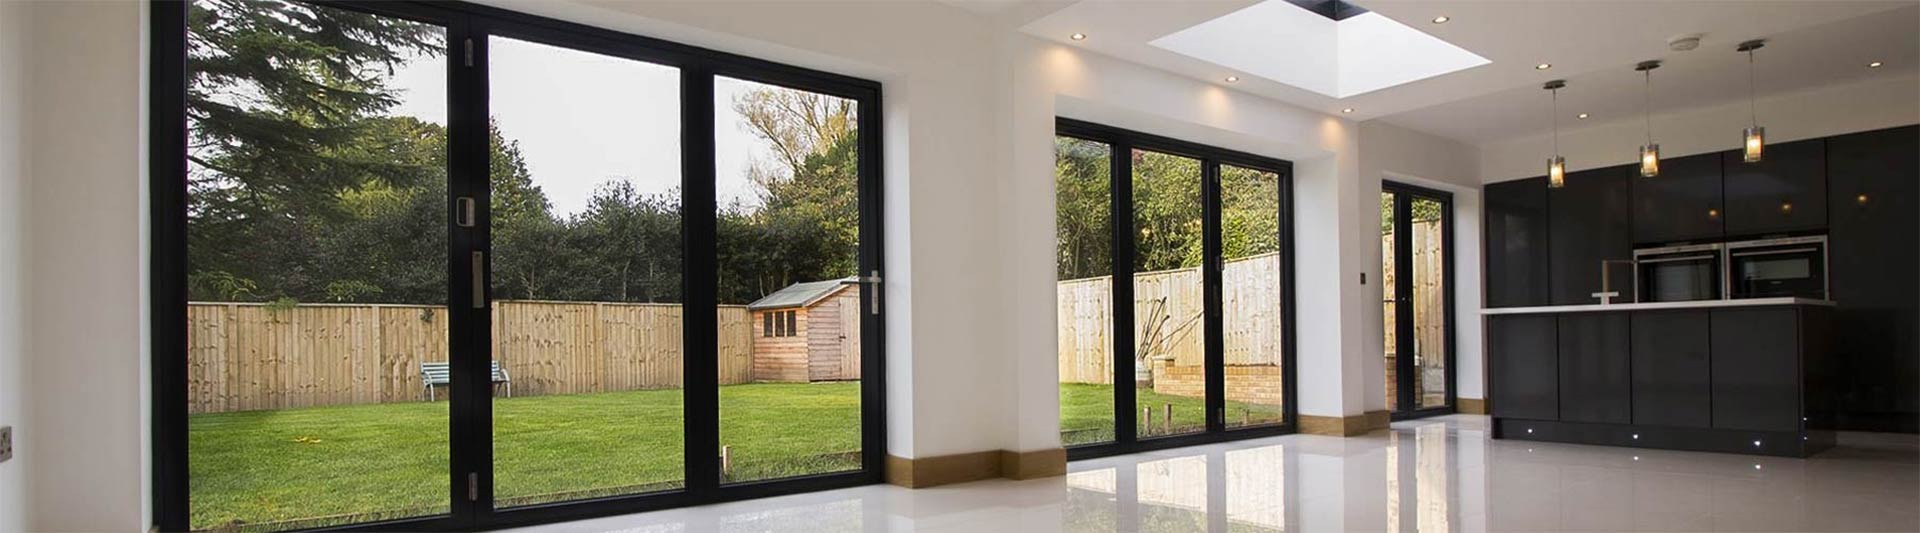 Installation of three sets of bifold doors to complete this multi use space in a new build home, Heswall.